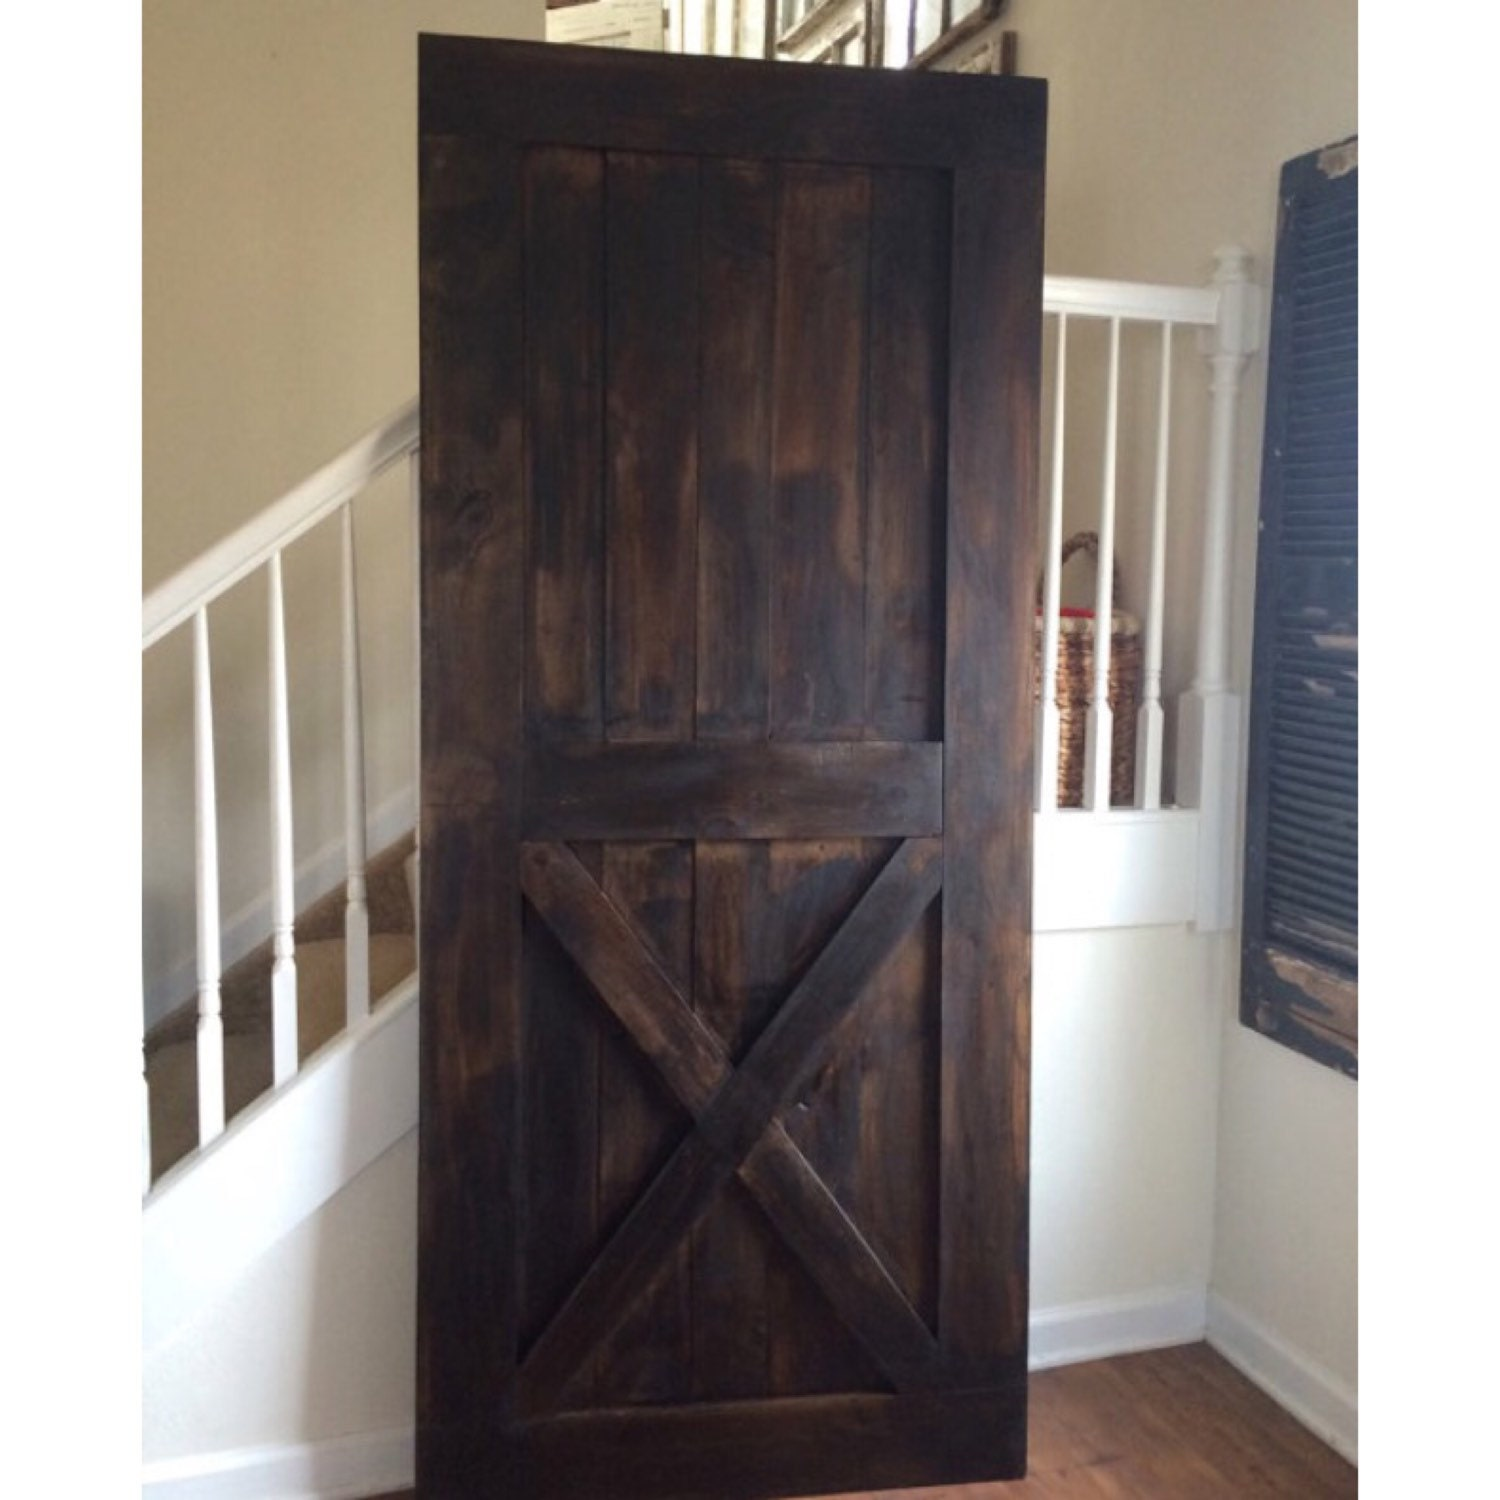 we creek will our this remodel entertainment make from you in barns similar beautiful a see projects doors magnussen stoney furnishings that to showroom piece pin feature unit visit home door want barn pantry